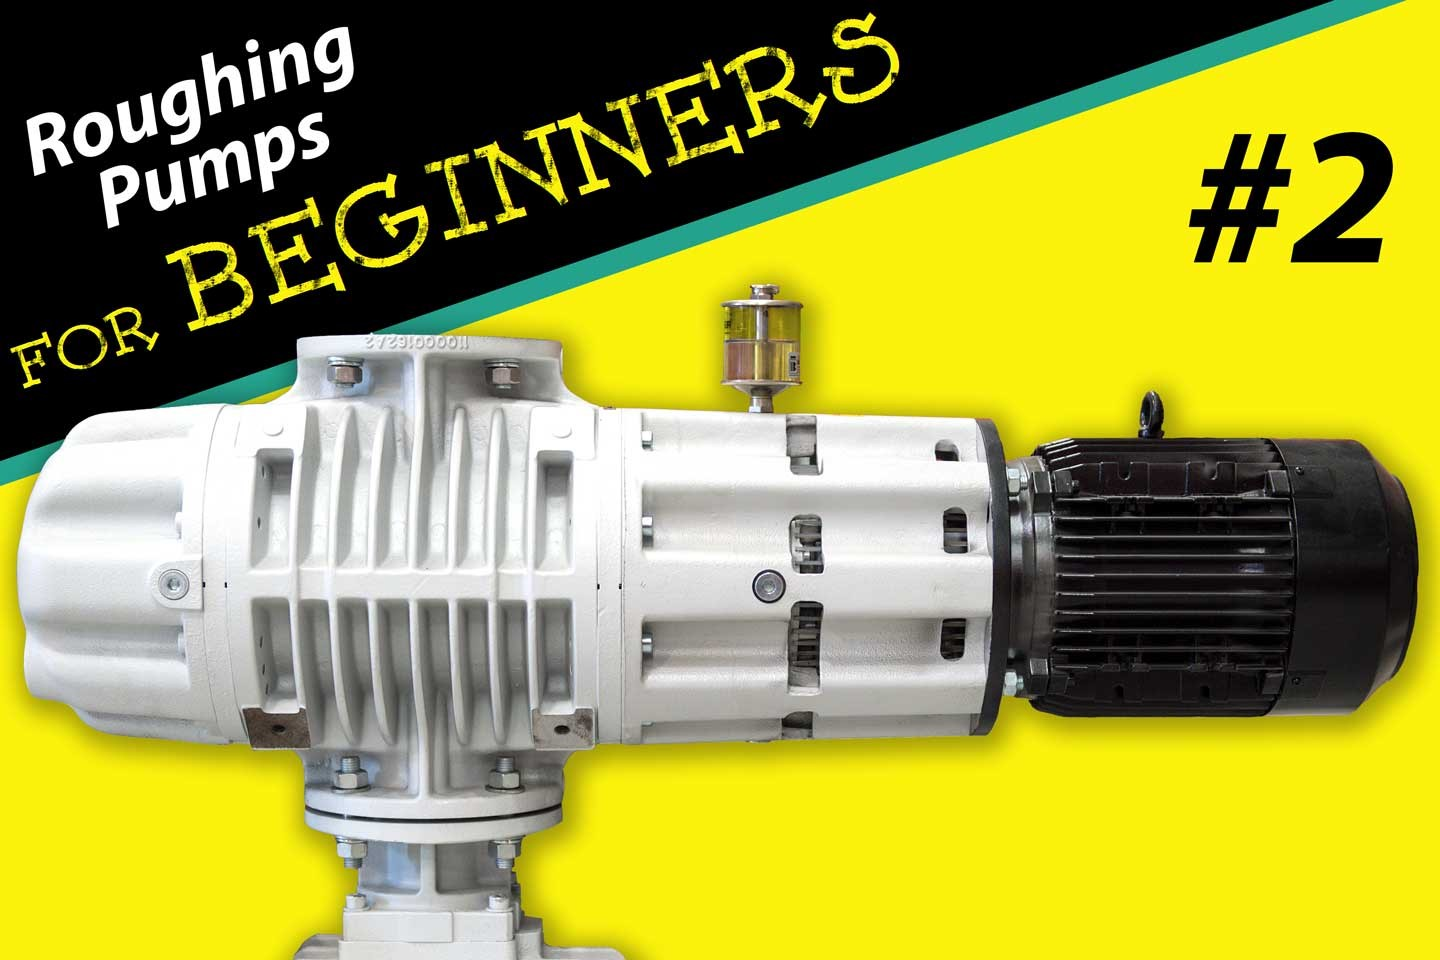 Roughing pump in high-vacuum furnaces for beginners #2